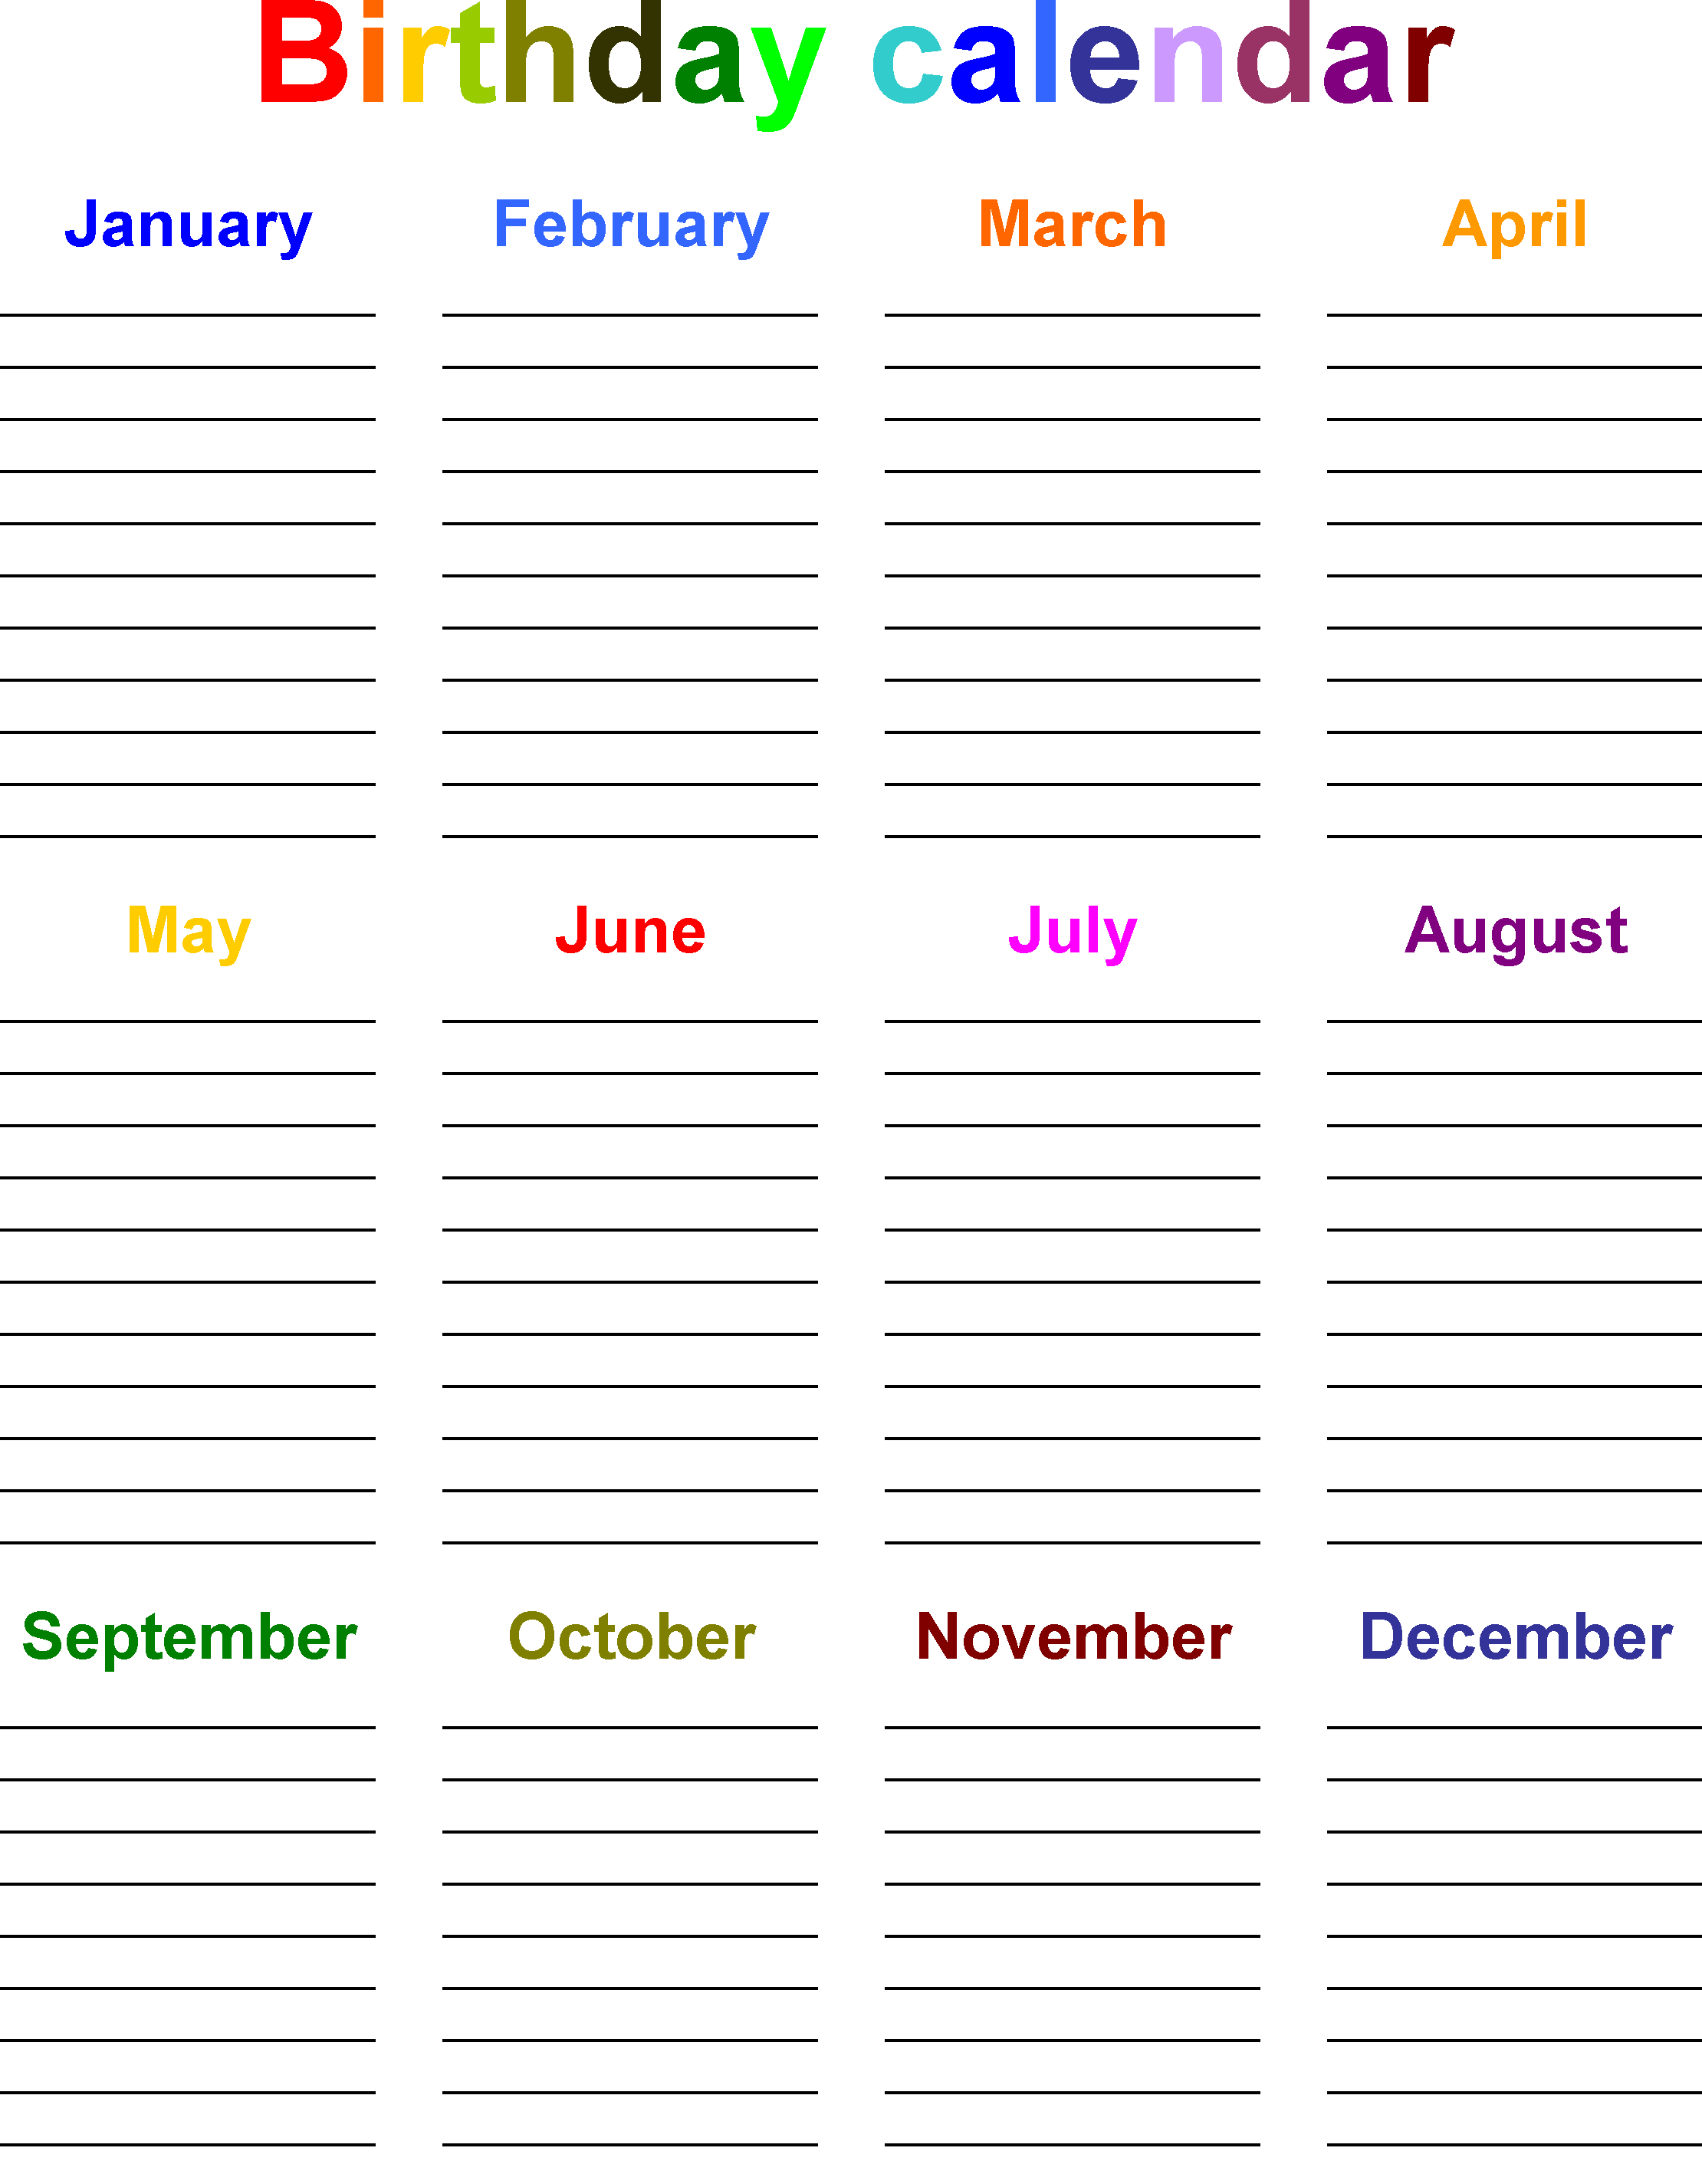 Birthday Calendar Template Excel Sheet